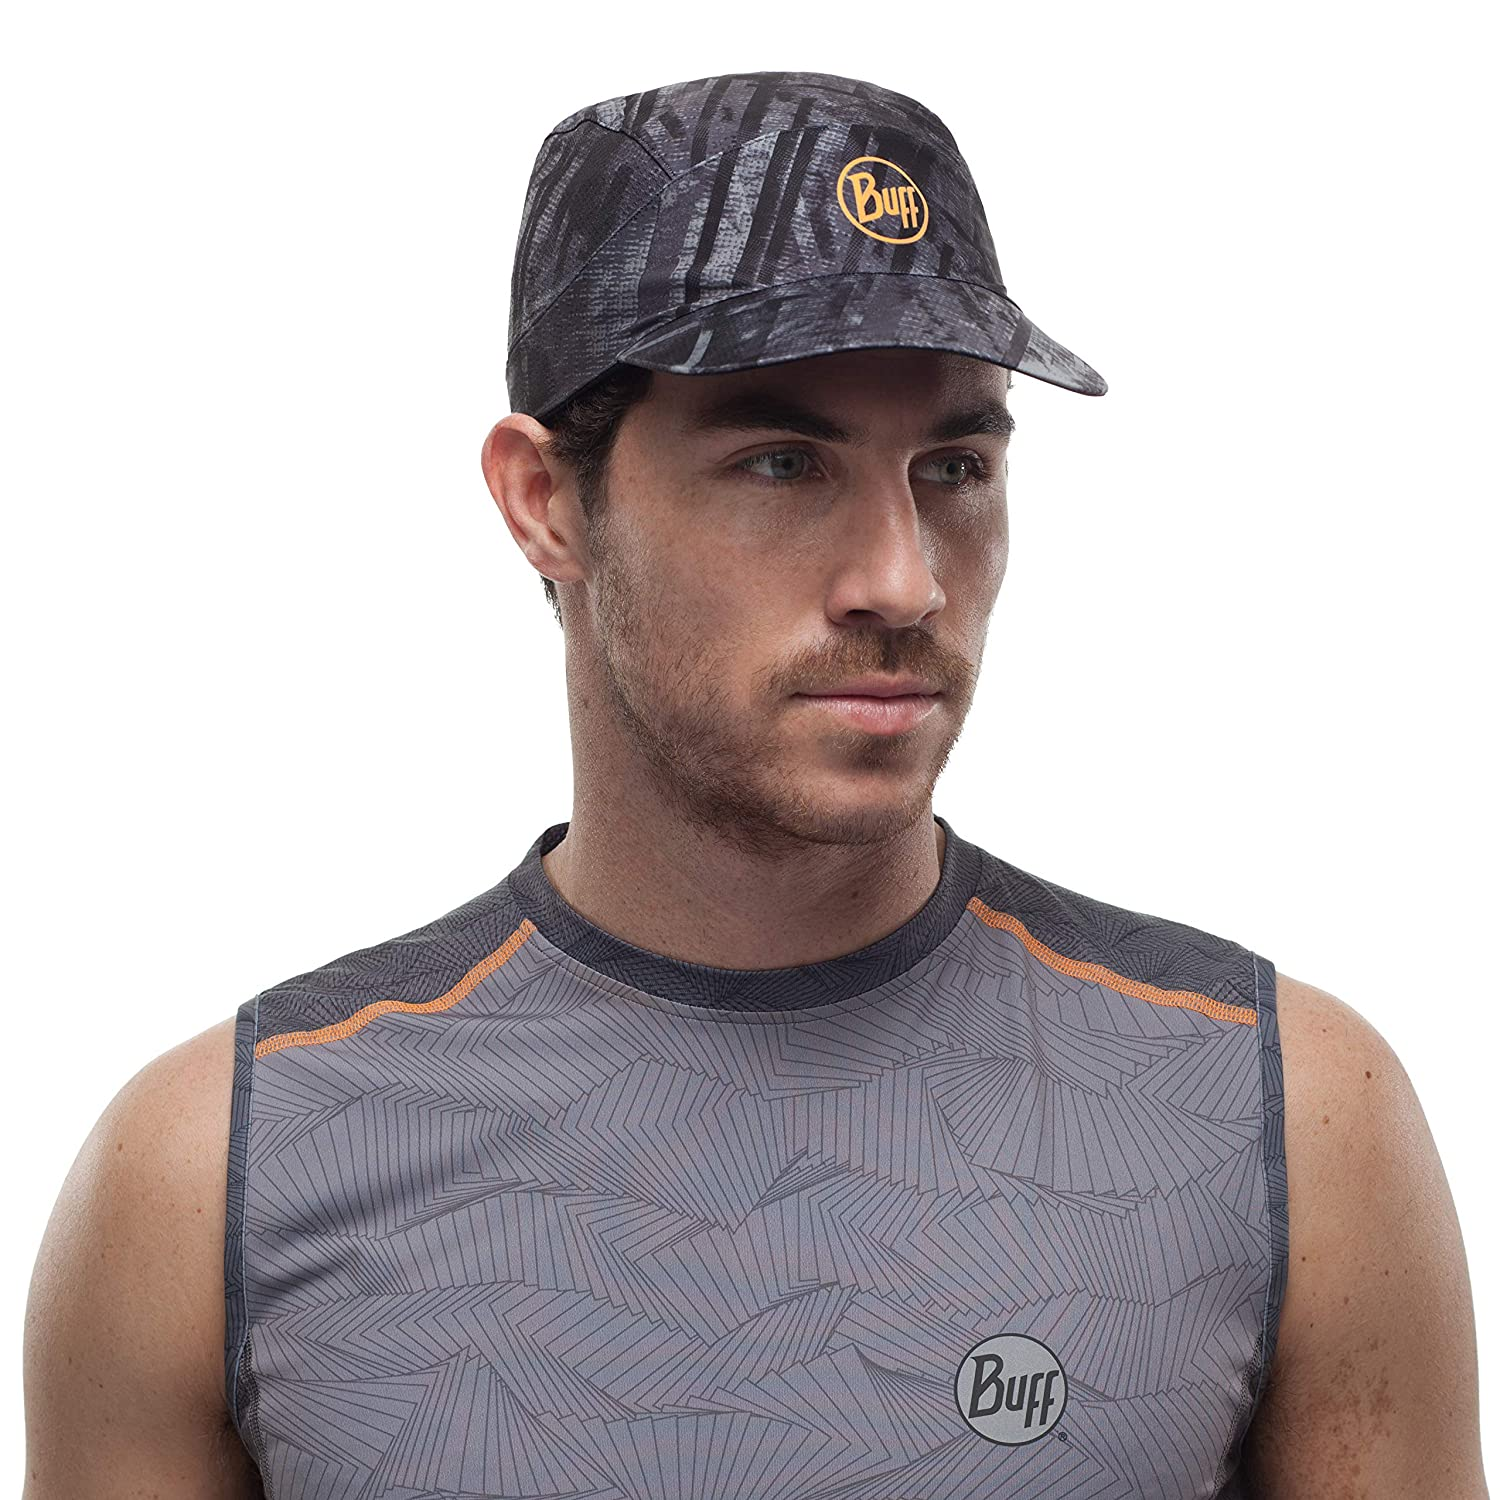 FR Unique Fabricant Grey Buff R-City Casquette Pack Run XL Mixte Adulte Taille One sizeque